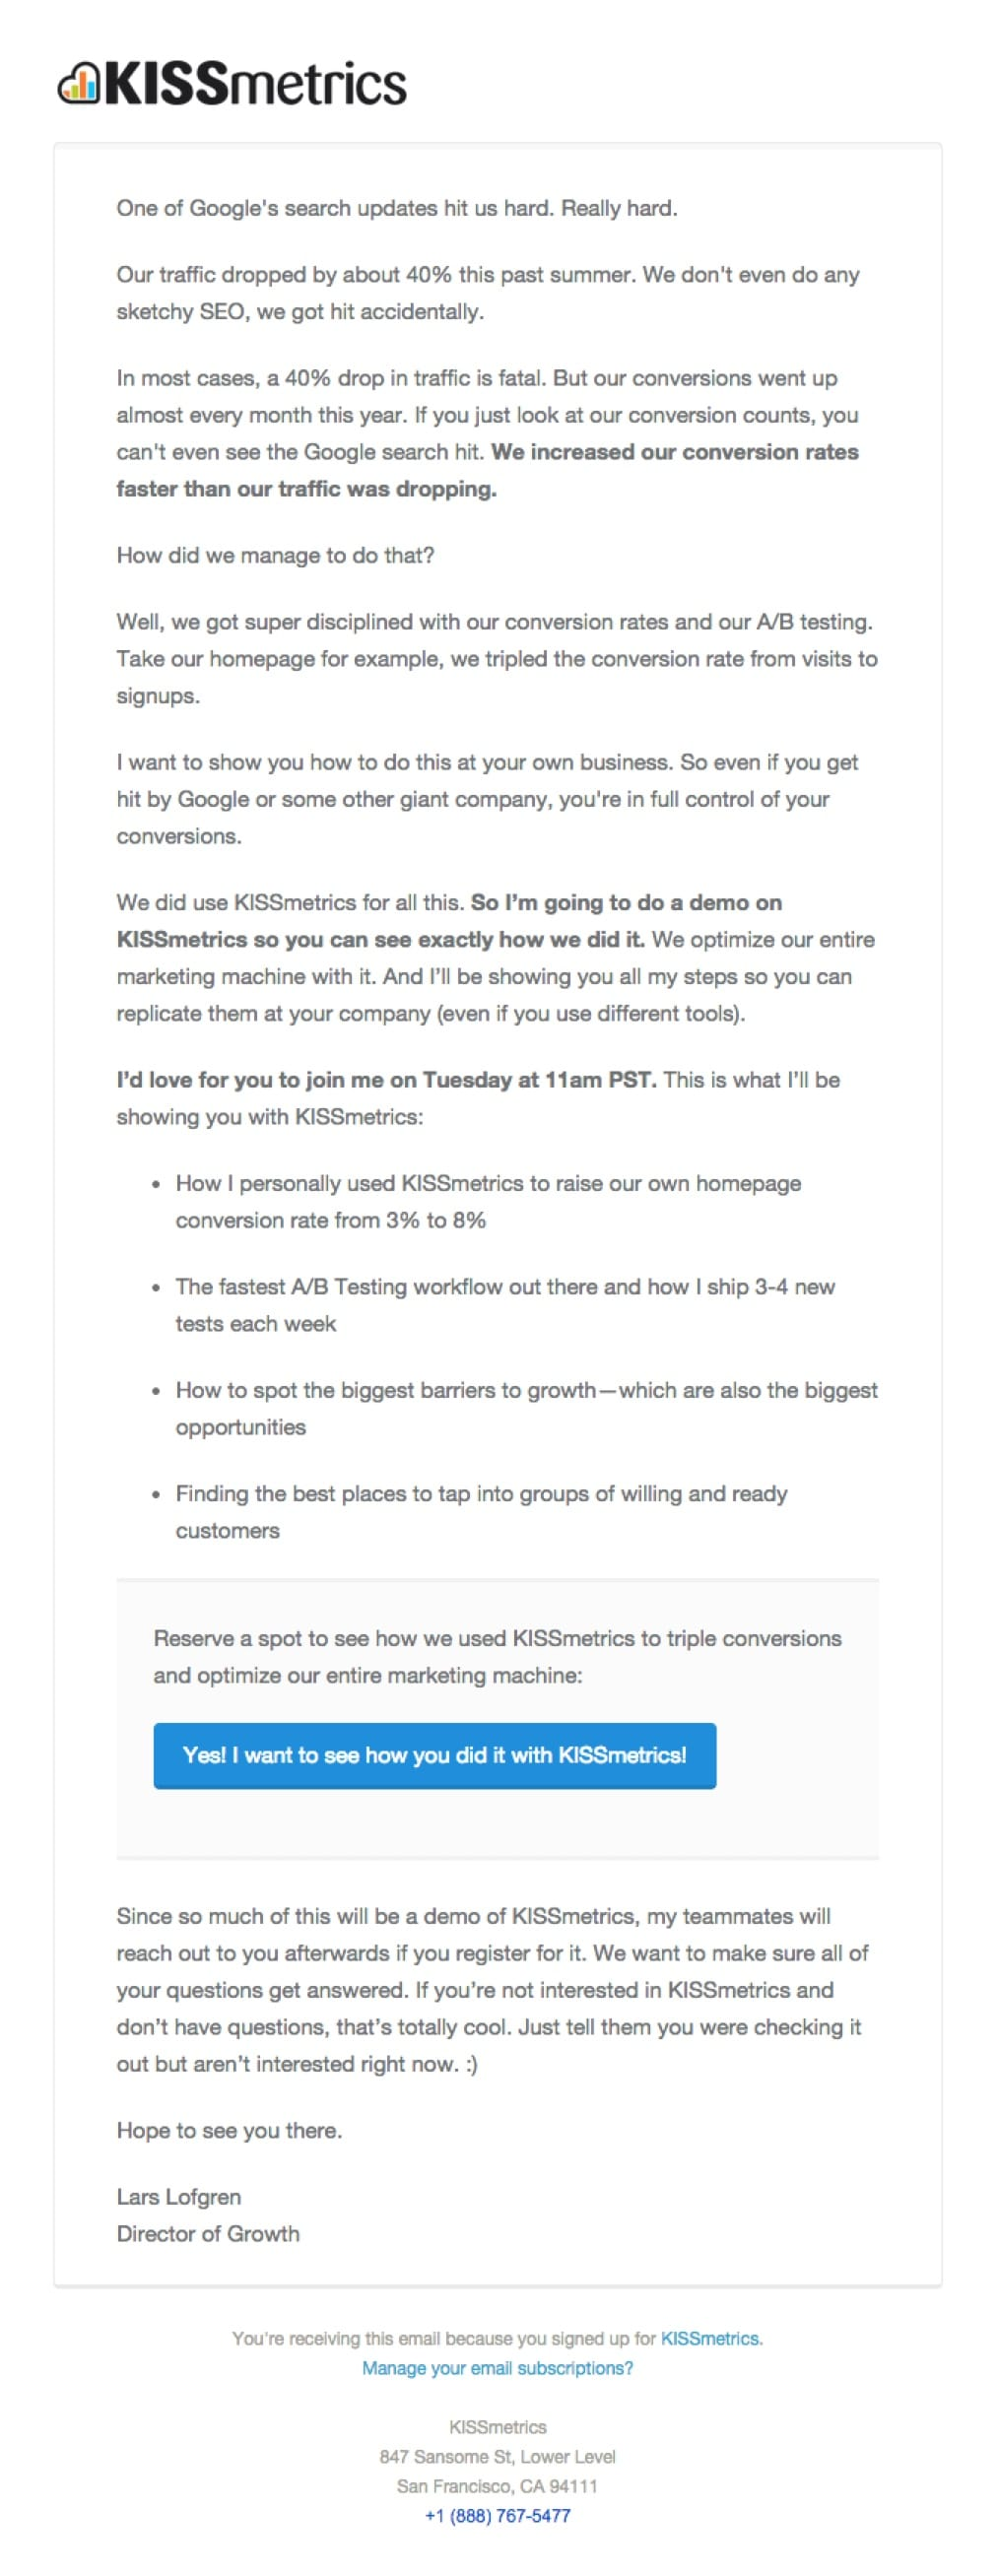 promotional email example kissmetrics (event announcement)